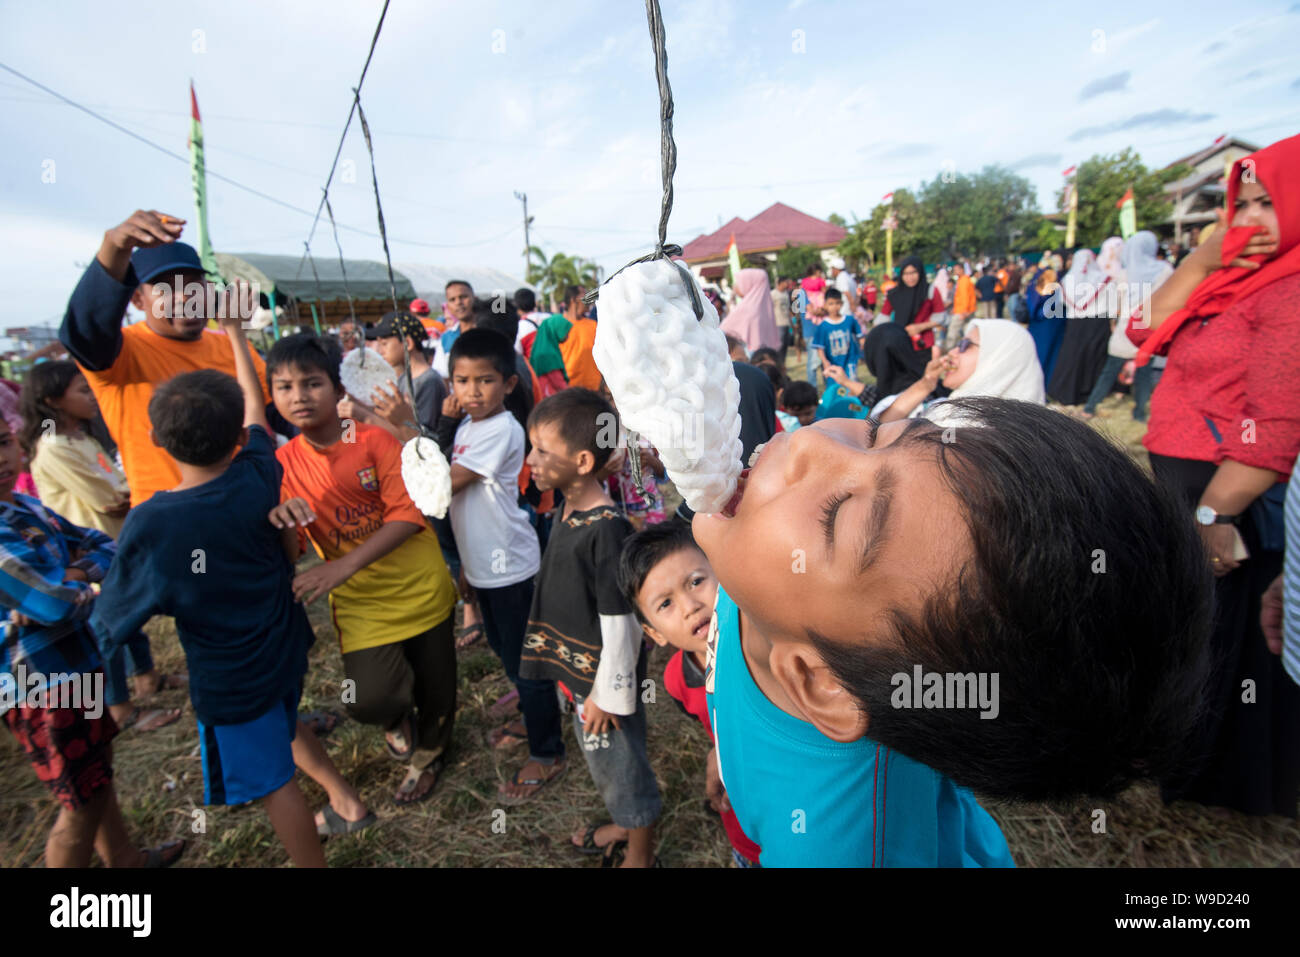 Banda Aceh, Indonesia - 17 August 2018: Participants try to eat crackers in the Crackers Eating Competition in Banda Aceh Welcoming Indonesia's Stock Photo